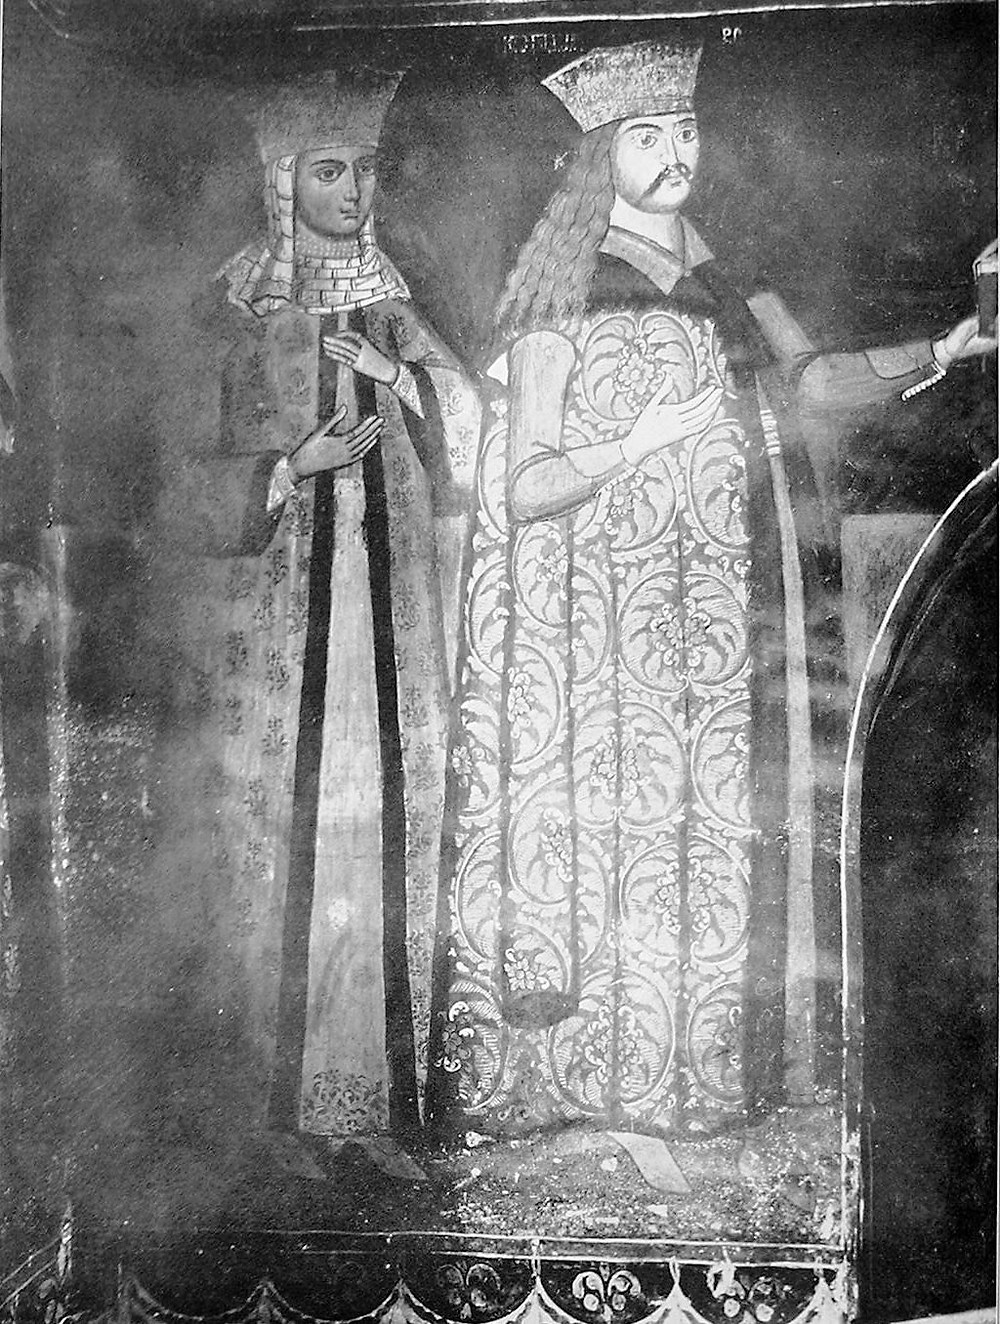 Radu the Great of Wallachia with his wife, Catalina Crnojević of Zeta